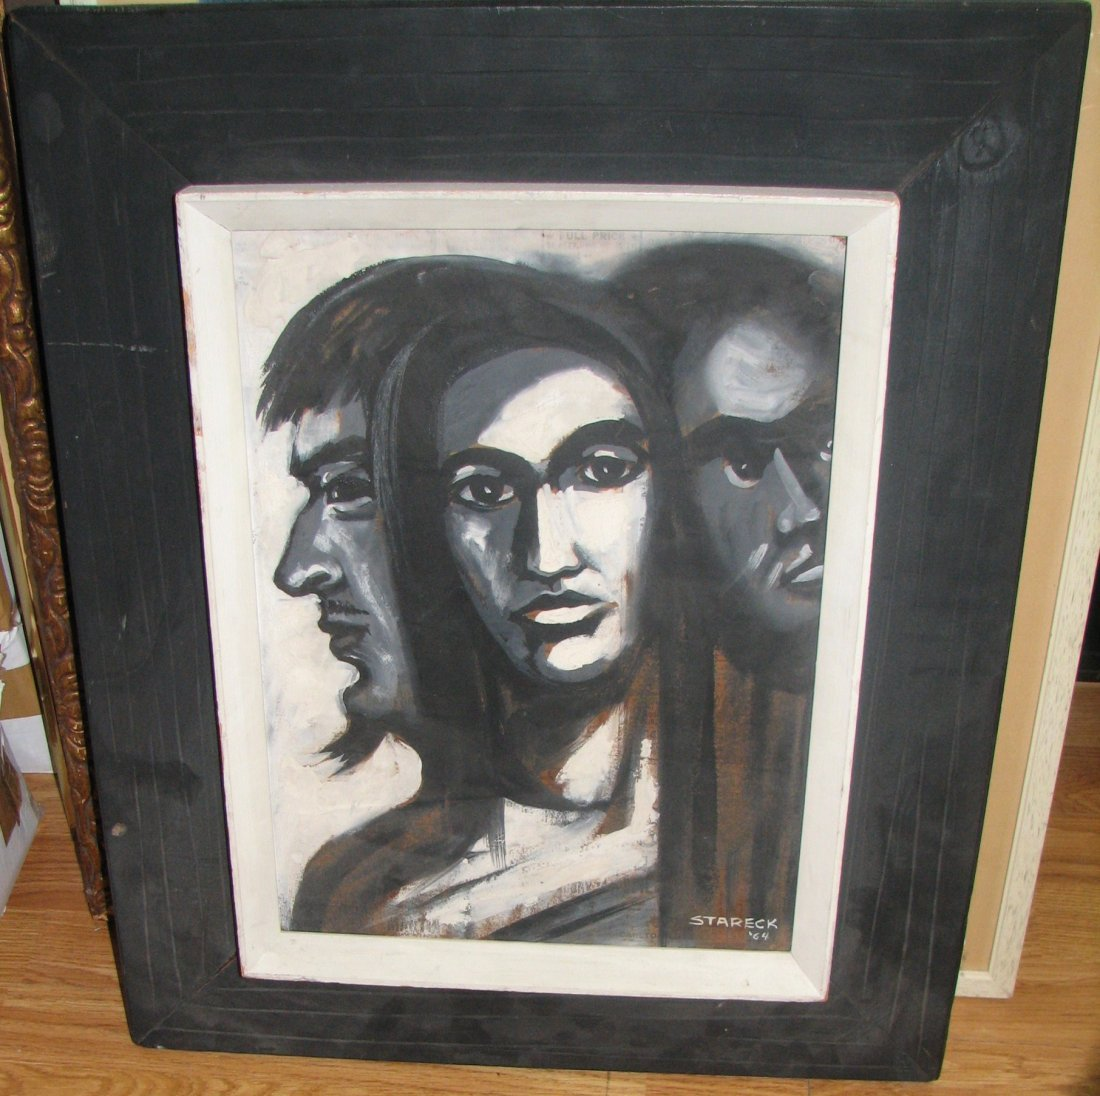 STARECK PAINTING OF THREE FACES